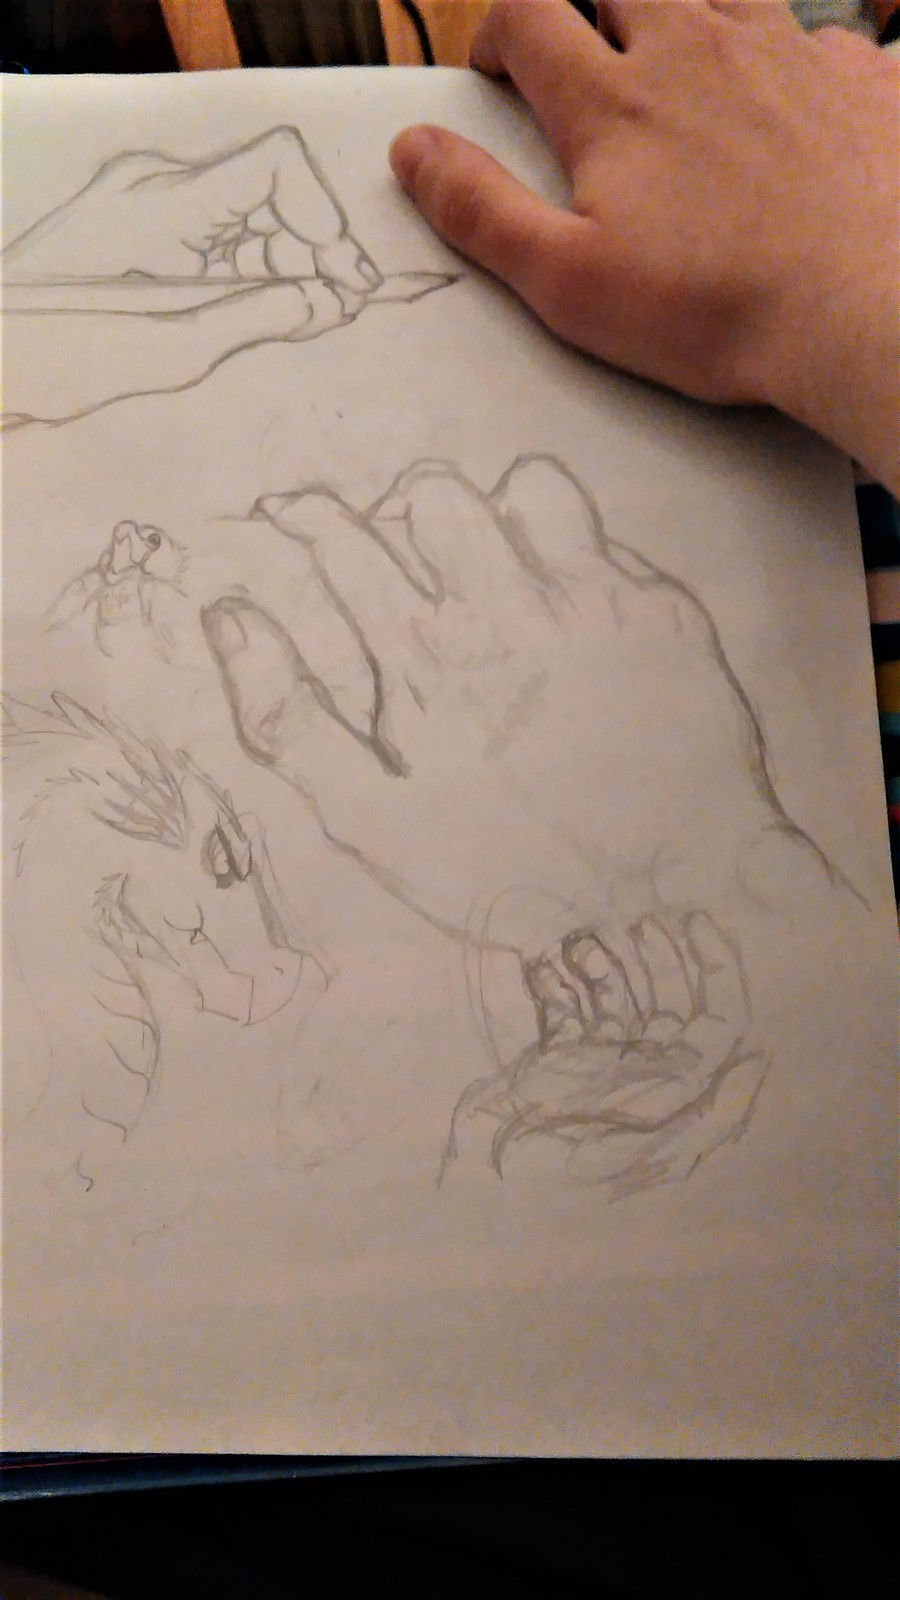 Scetching my hands. Sat down to practice drawing proportions but ended up scetching my hands after a while. Anatomy, proportions - it all has to do with drawing